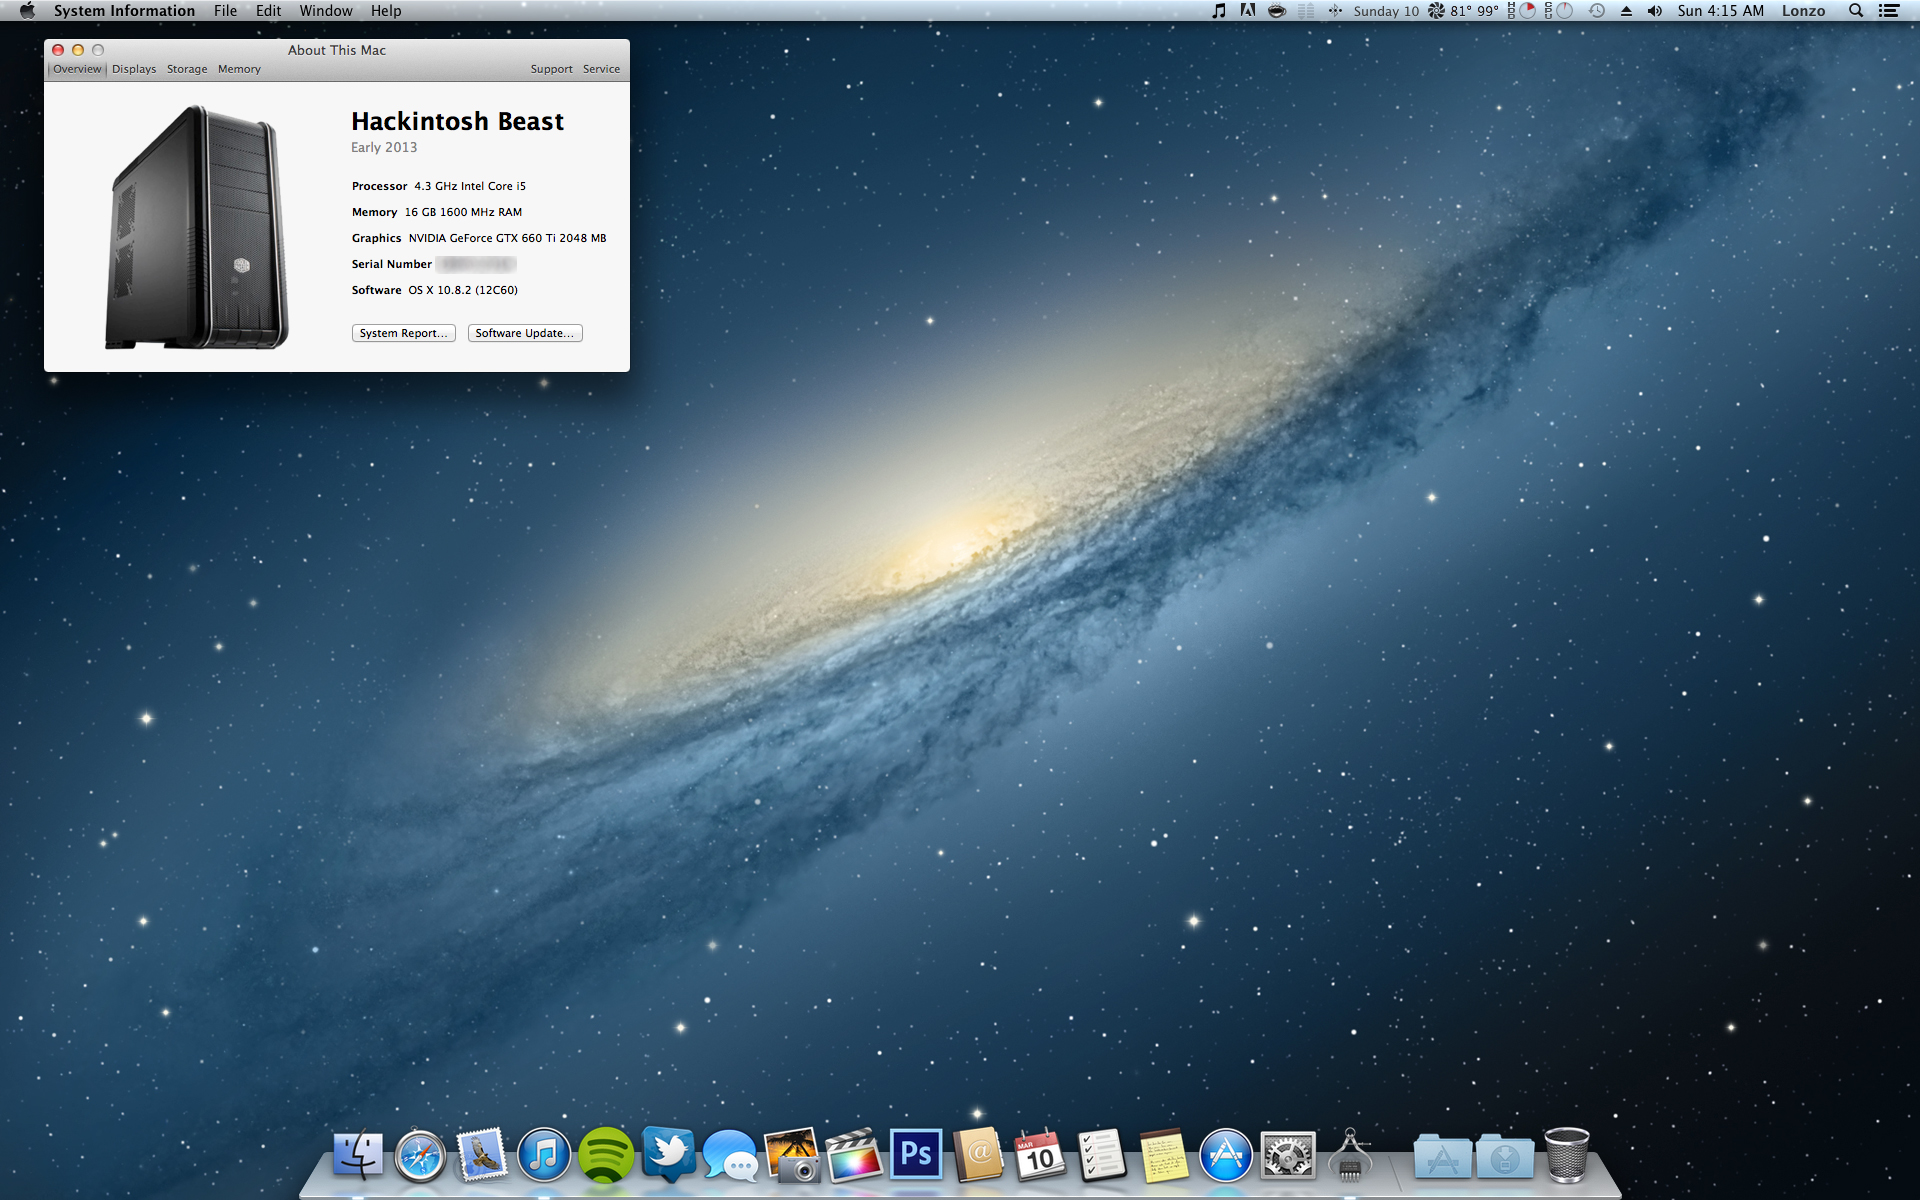 Completed my Beast of a Hackintosh. 2 SSD's with one running Windows 7 and the other Mountain Lion/Hackintosh